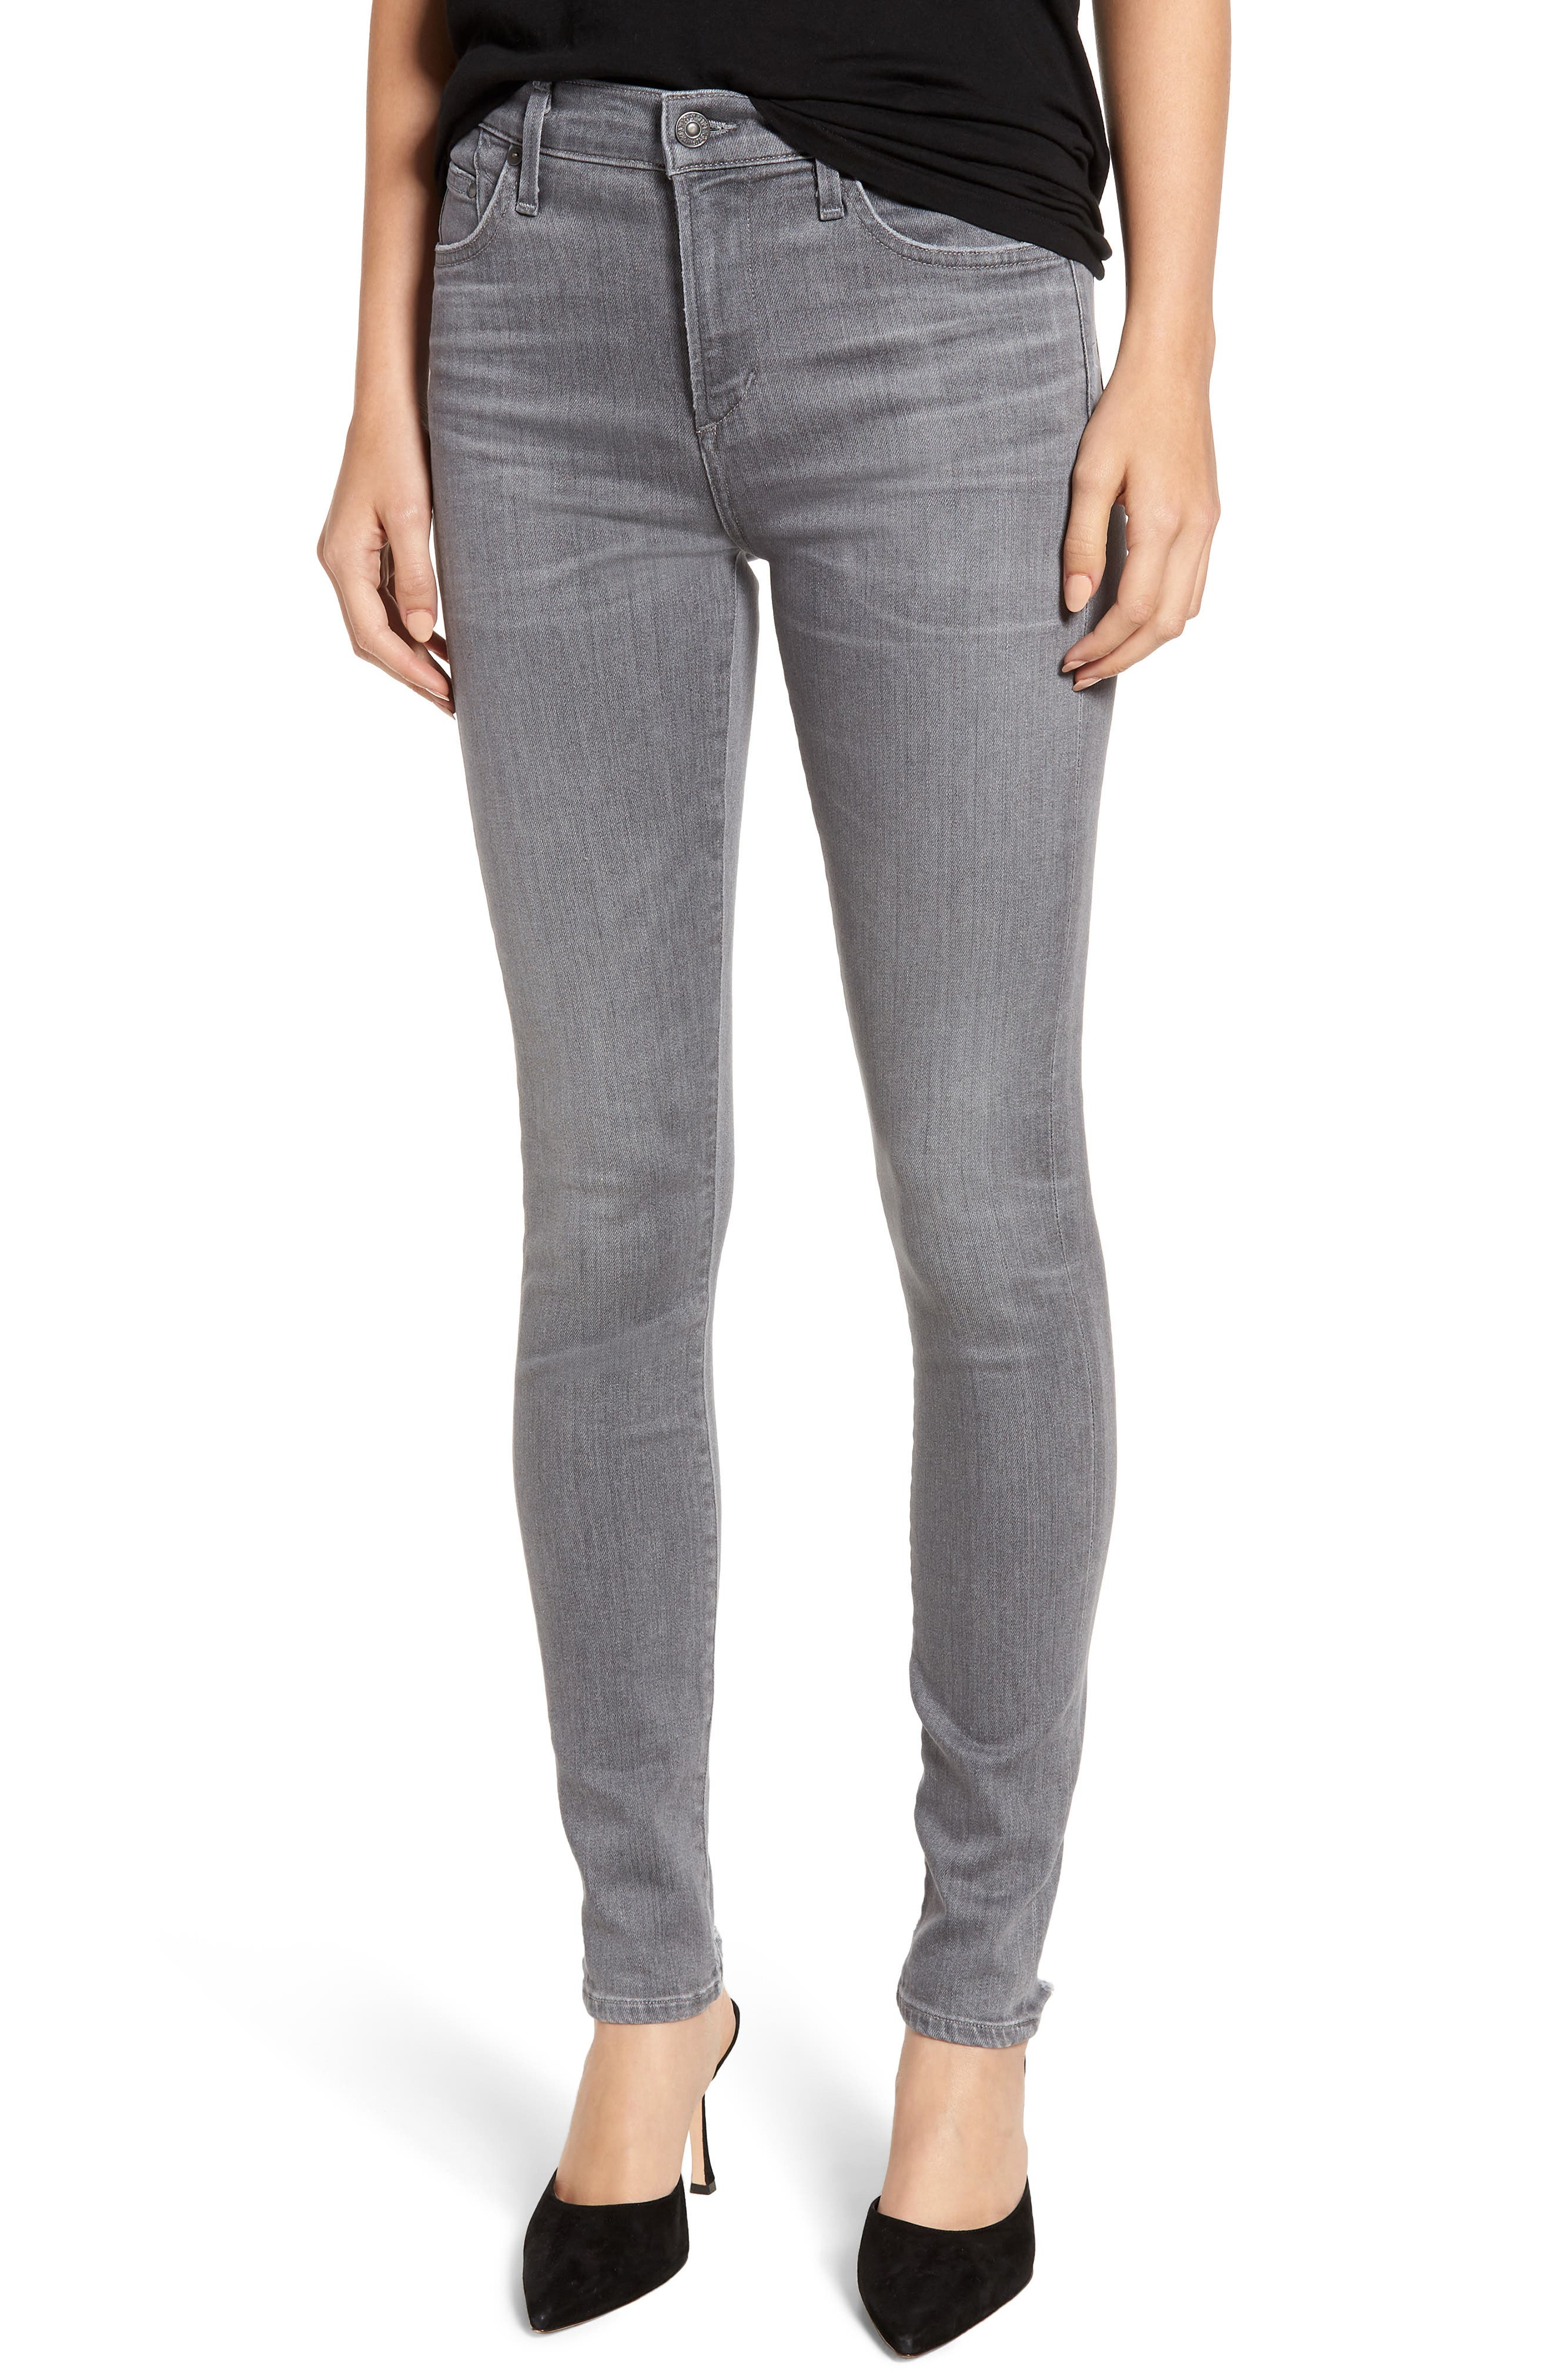 CITIZENS OF HUMANITY,                             Rocket High Waist Skinny Jeans,                             Main thumbnail 1, color,                             STATUETTE